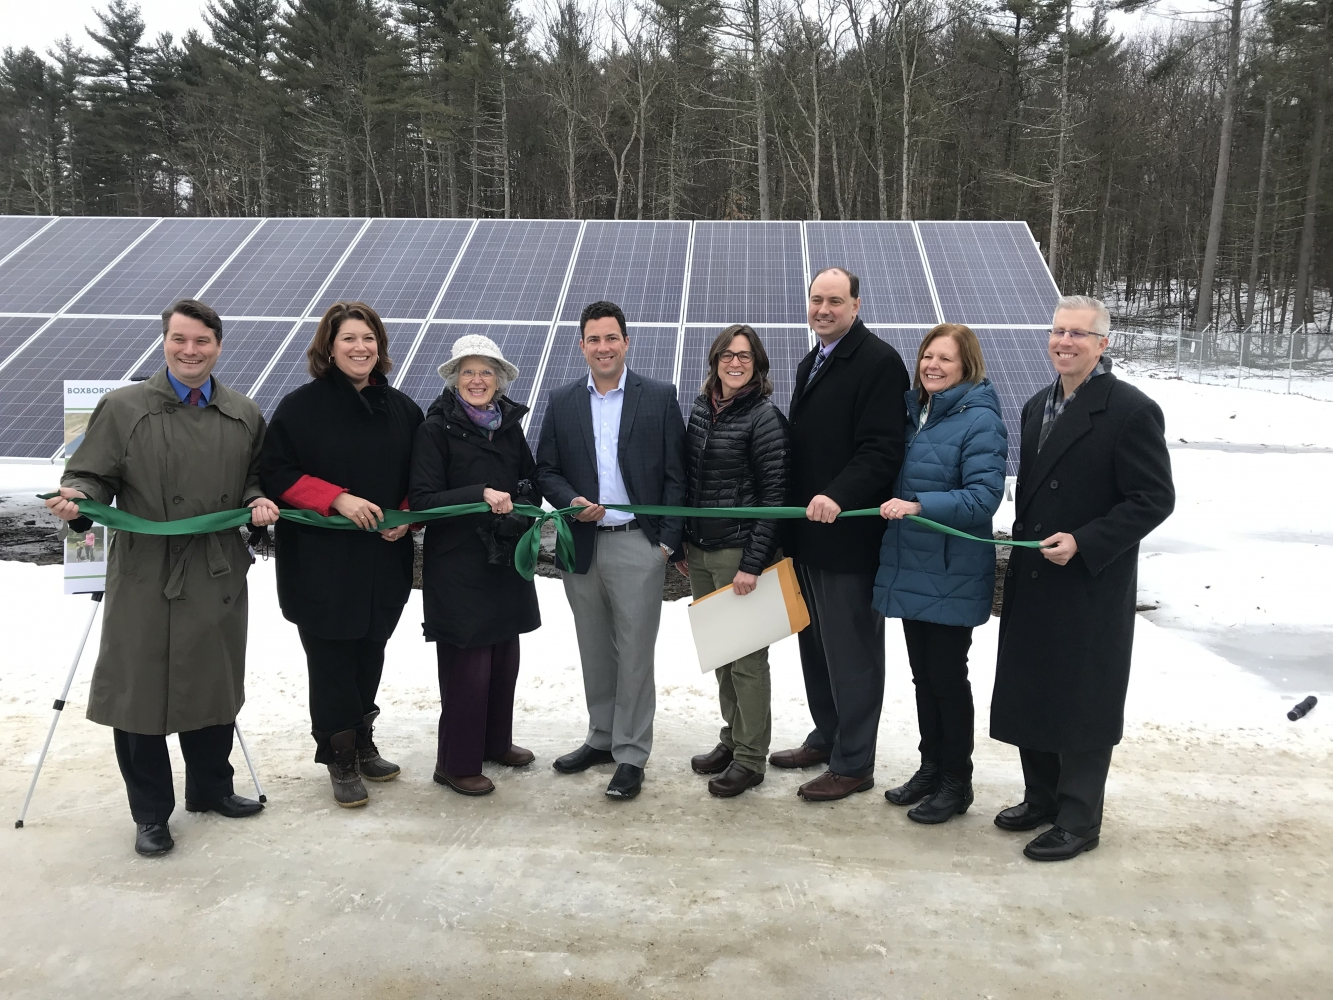 Boxborough Community Solar Ribbon Cutting - Green Street Power Partners